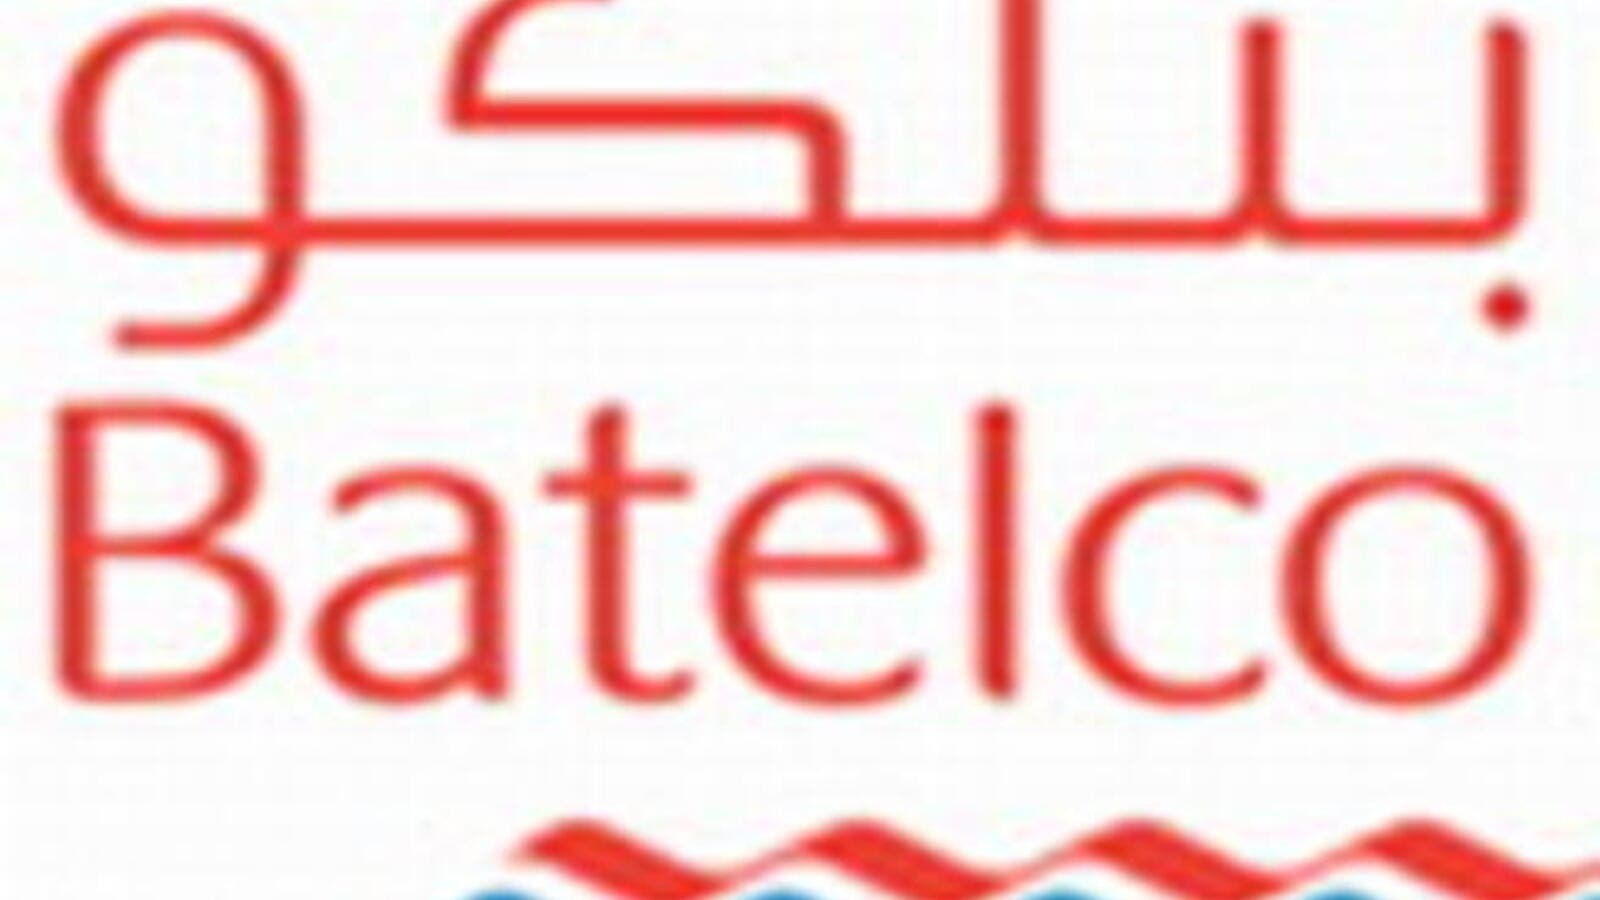 Bahrain: Revenue growth and profits for national telecommunications